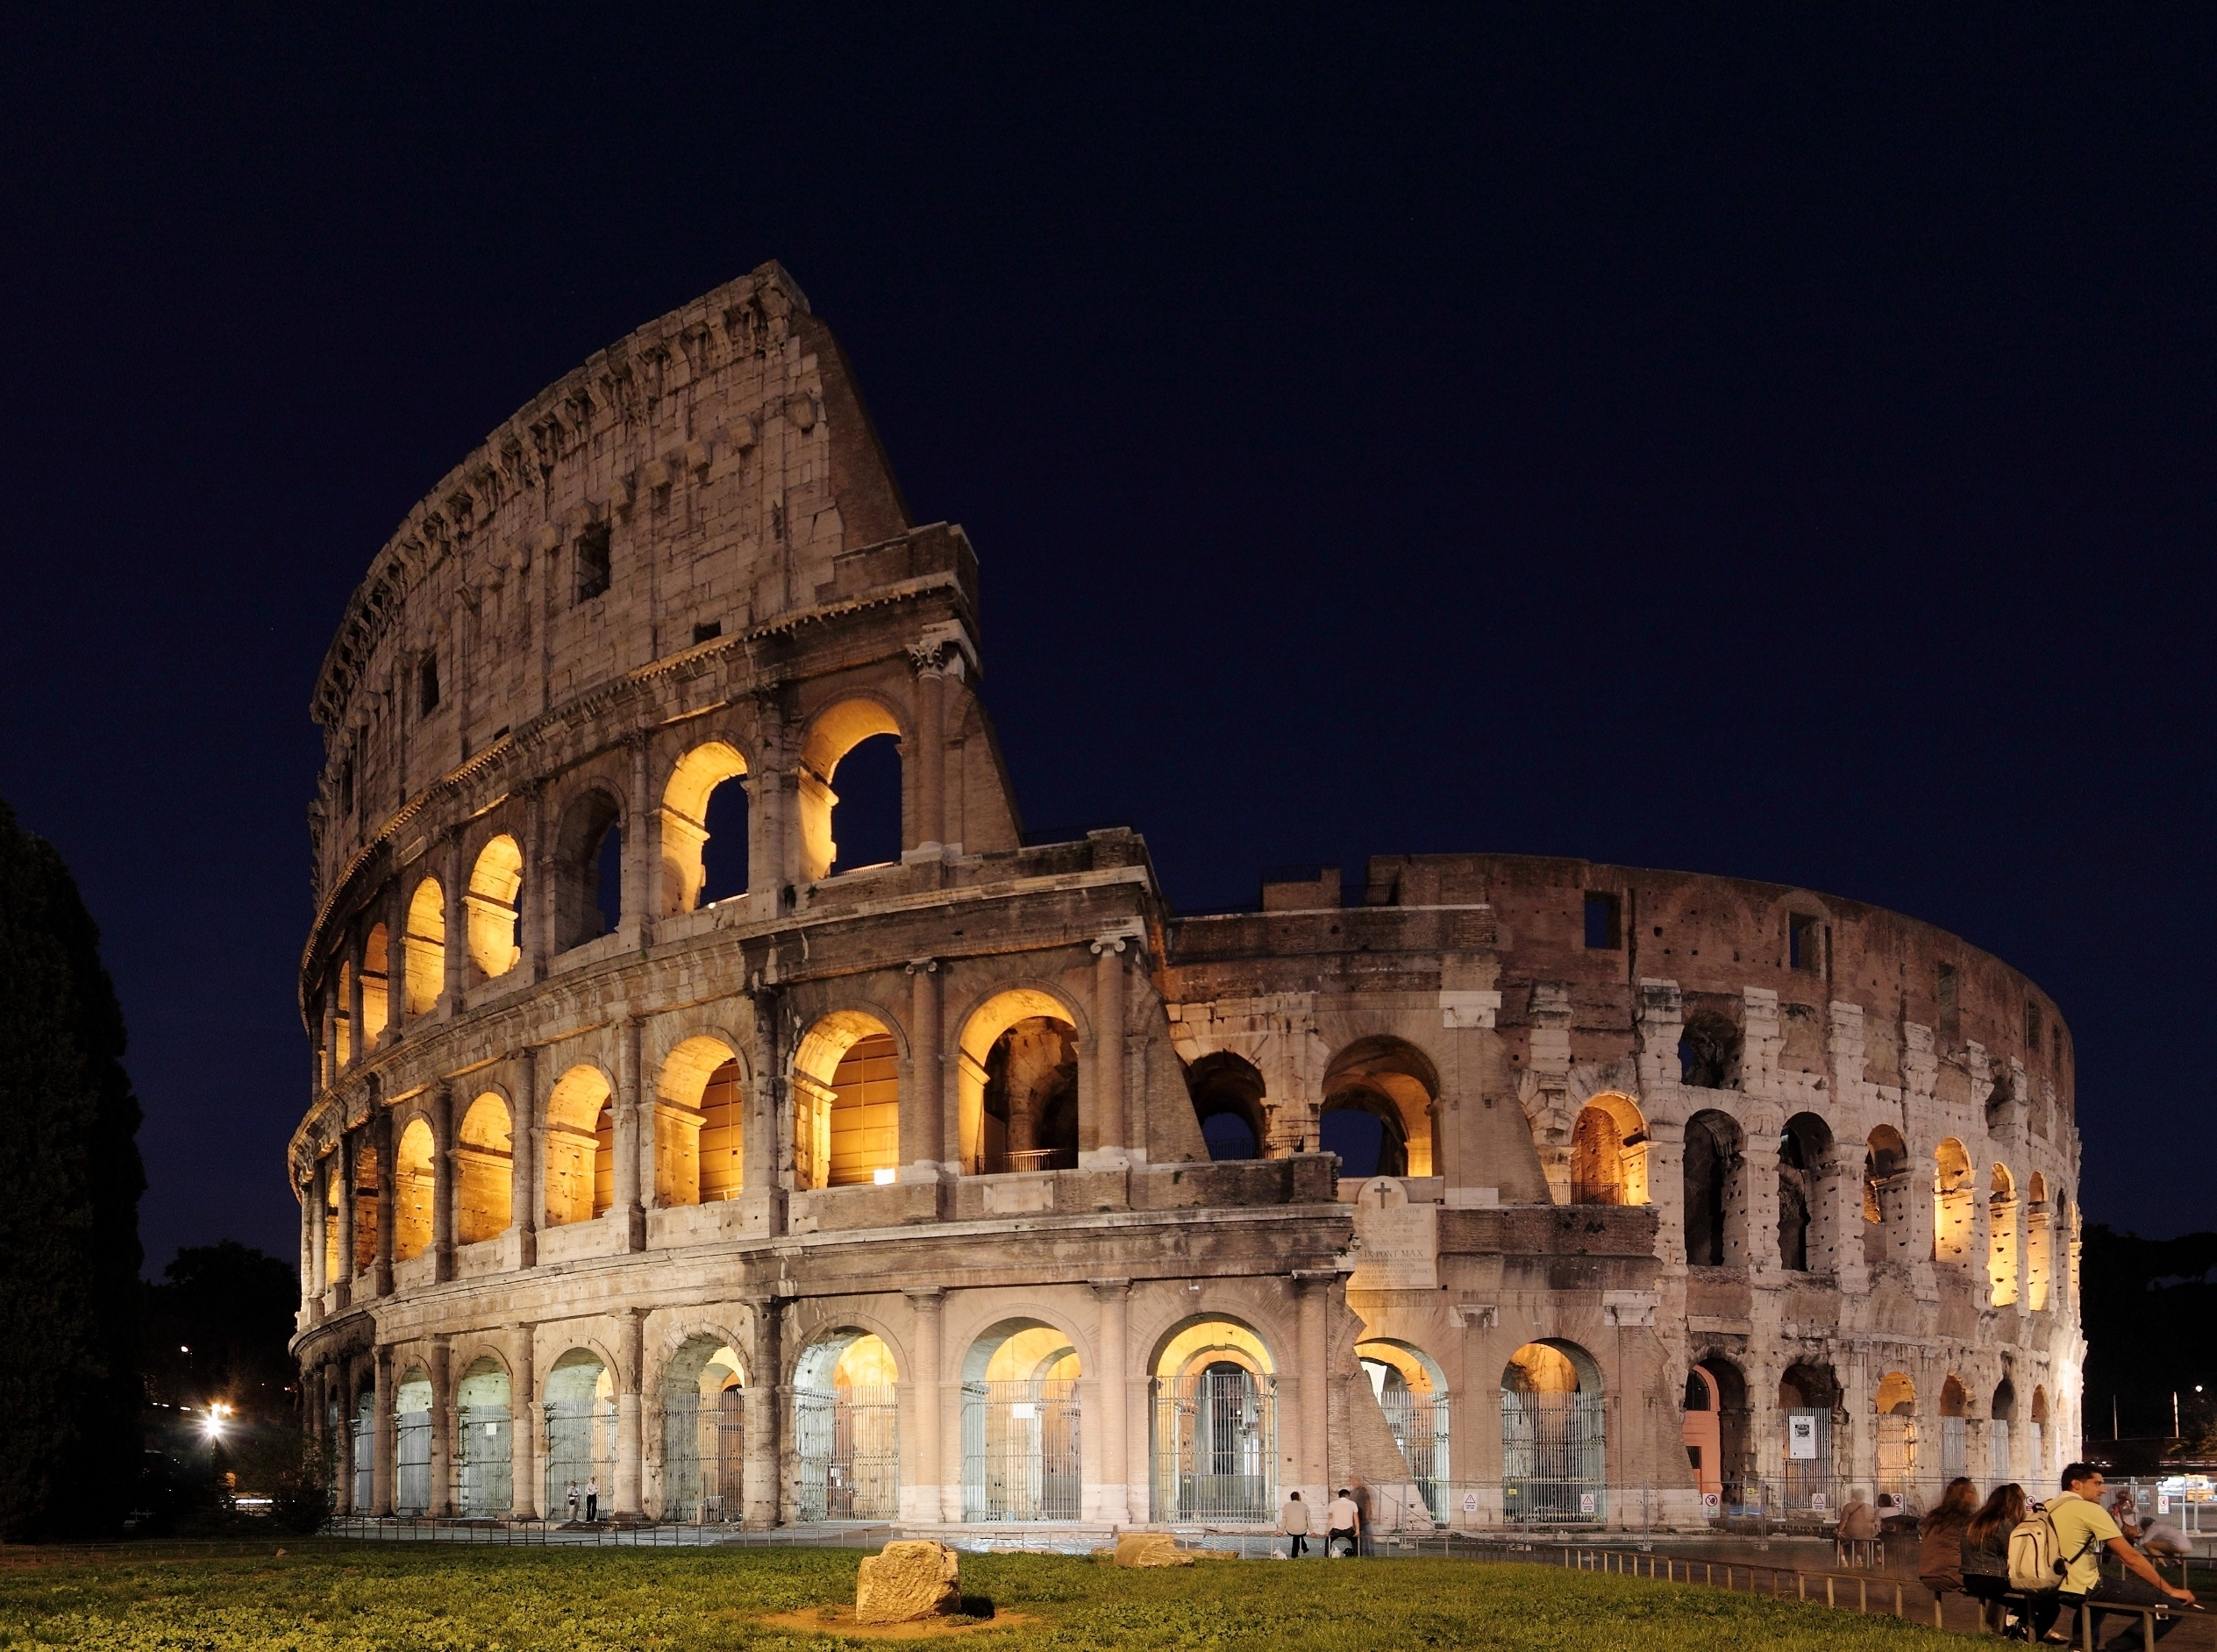 File:Colosseum at night - wide angle.JPG